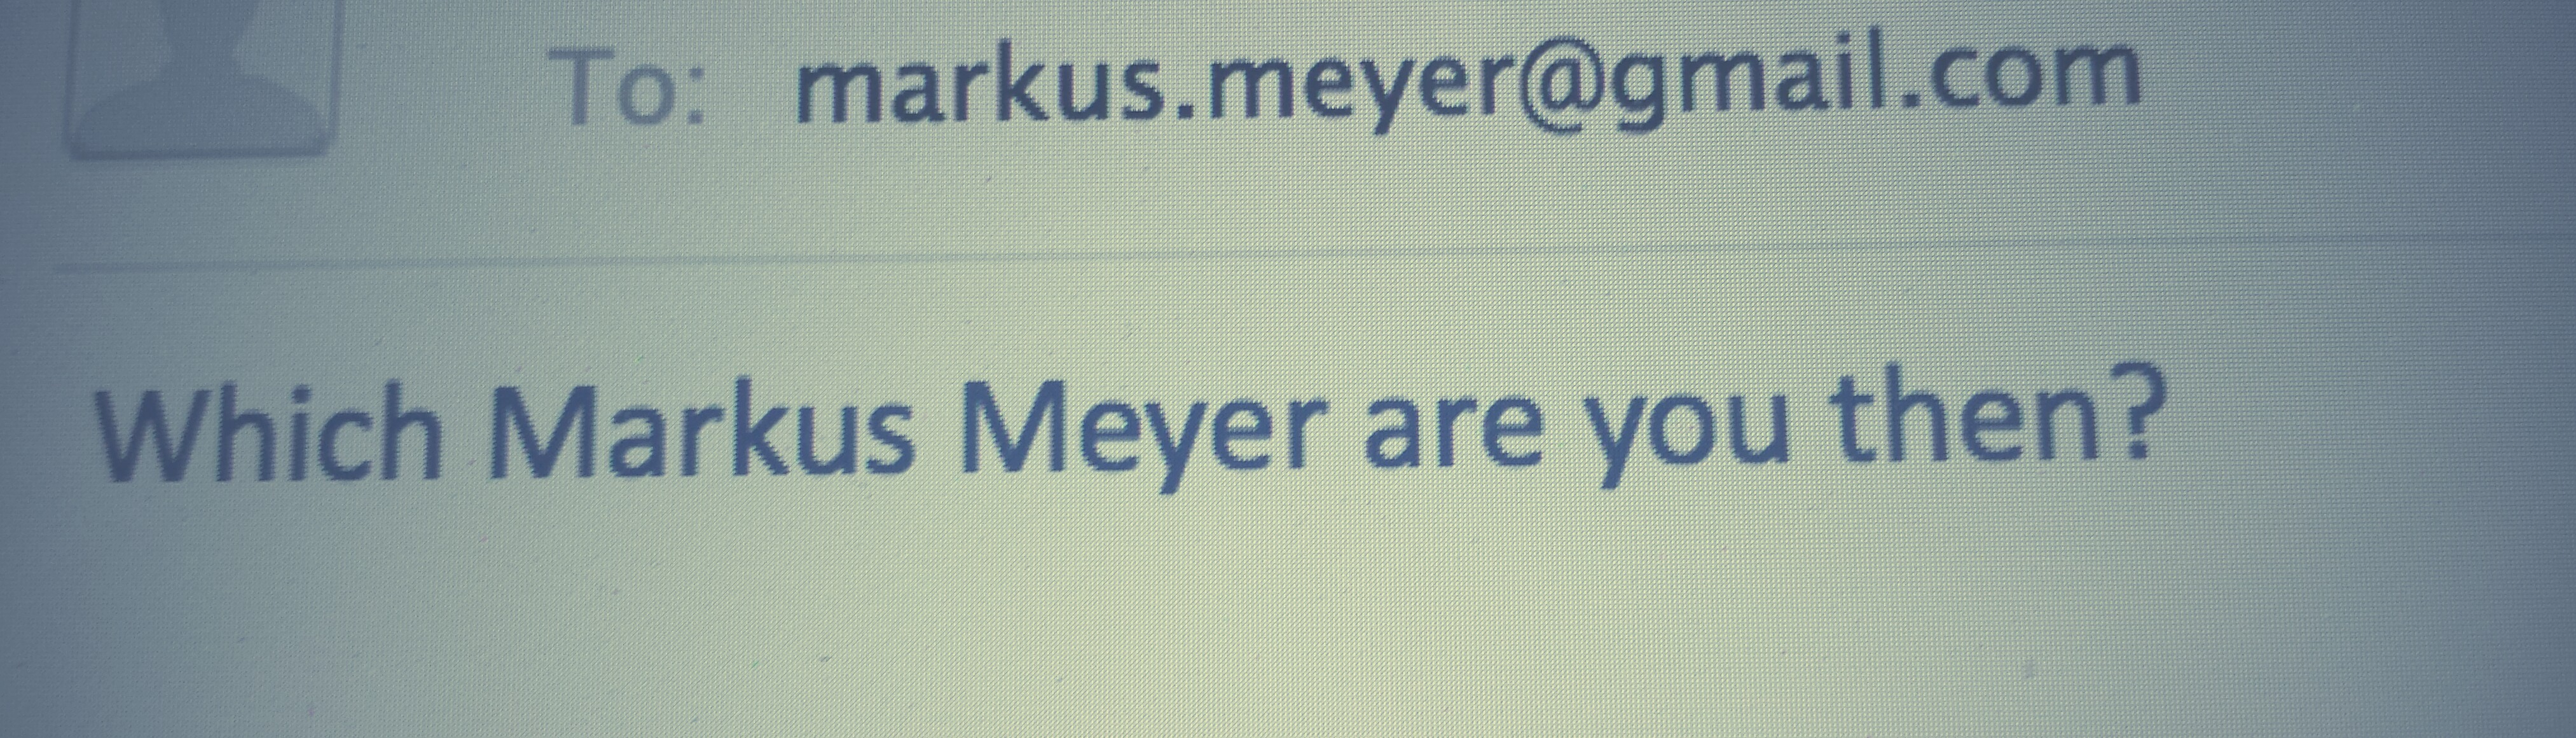 What are the other Markus Meyer's up to?